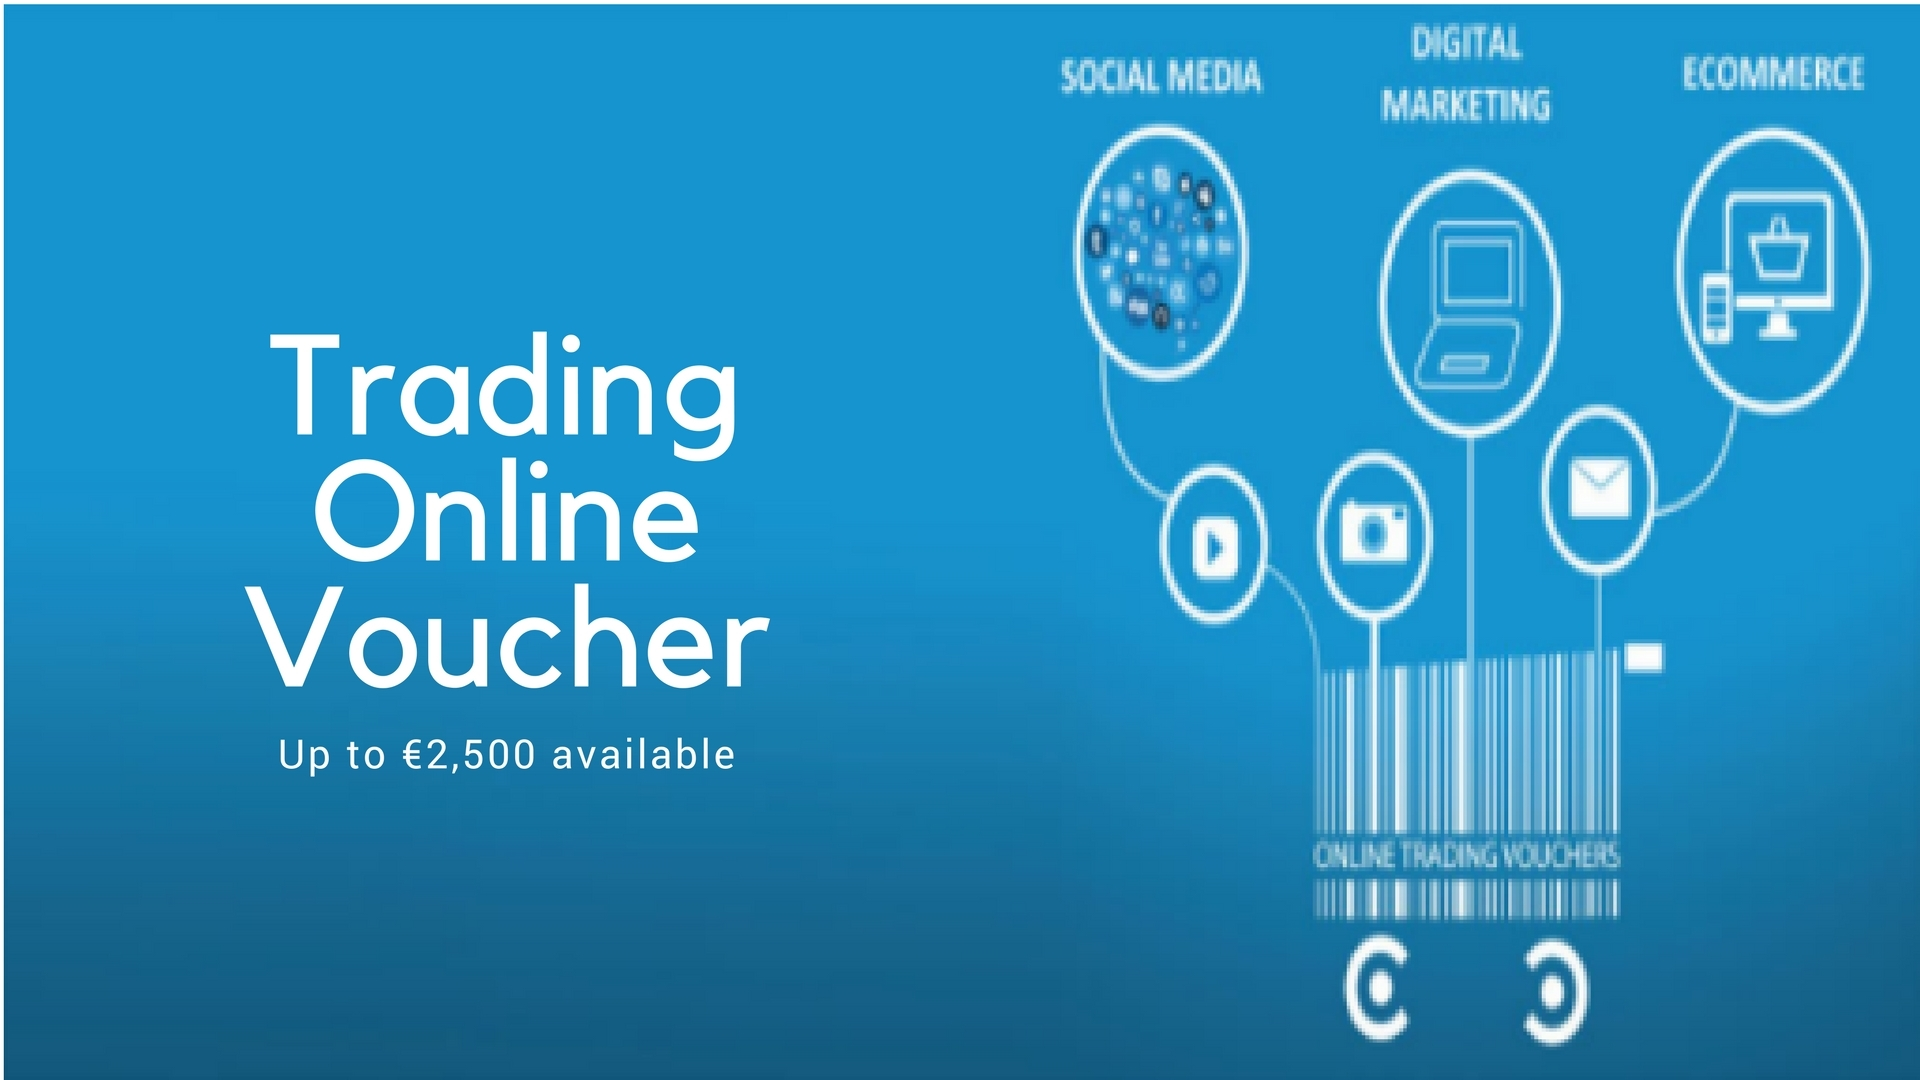 Up to €2,500 trading online voucher available